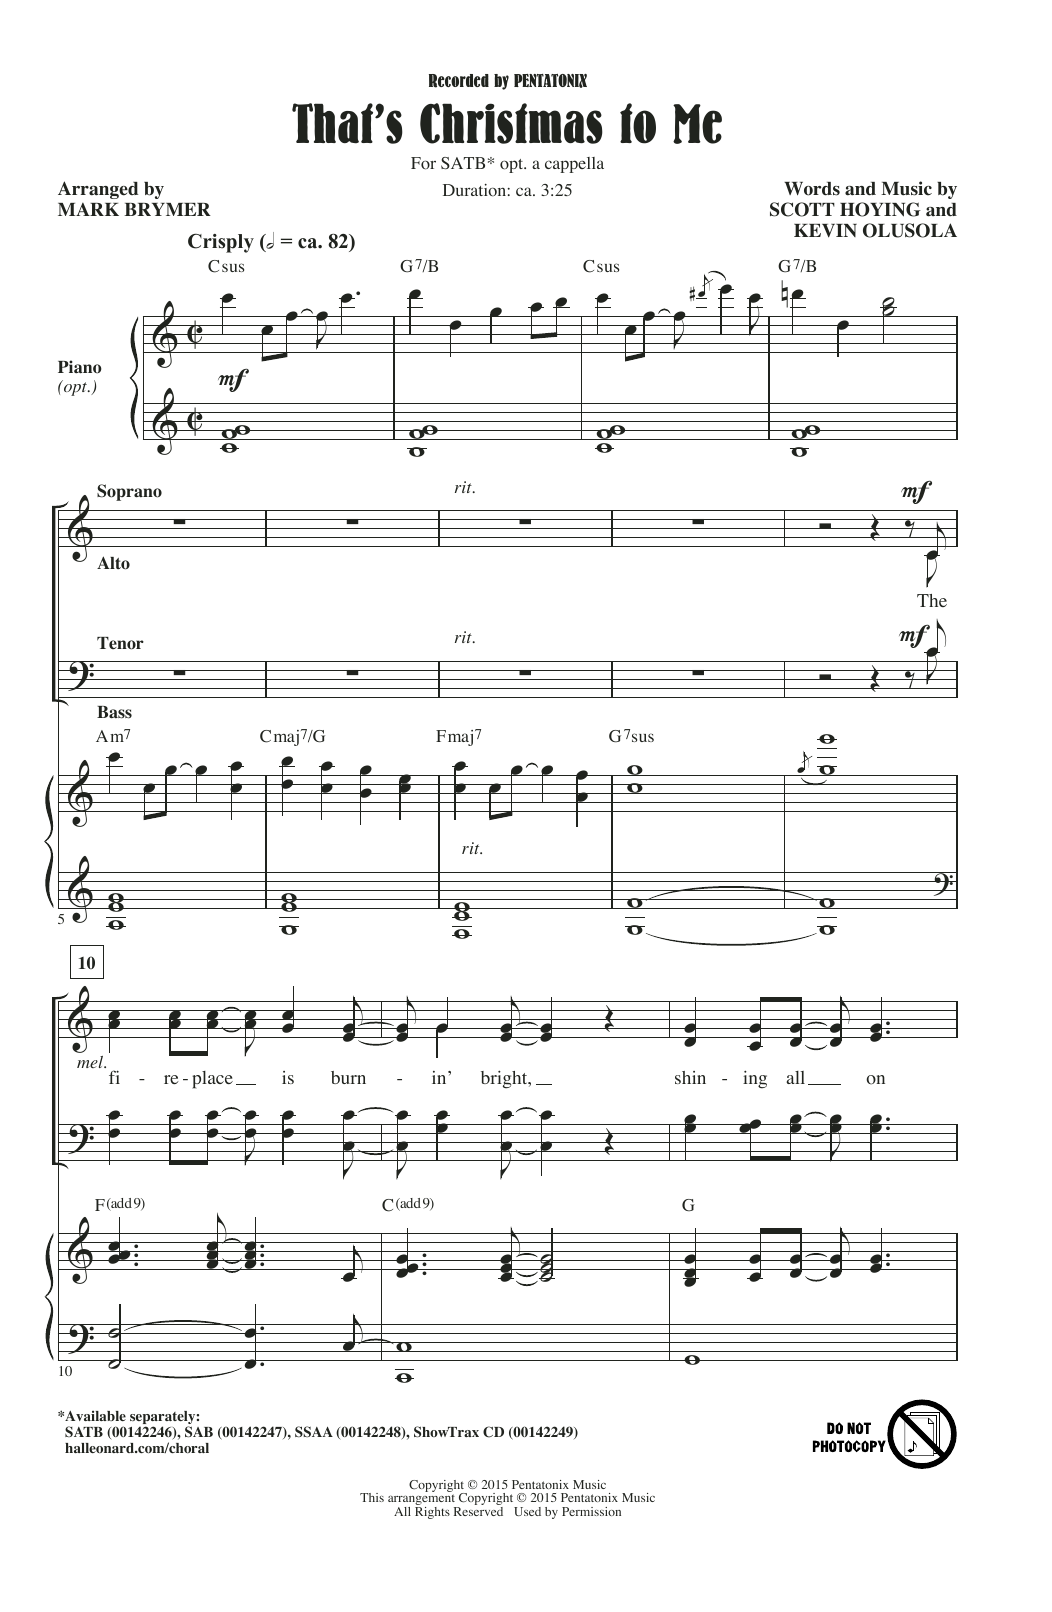 Download Pentatonix 'That's Christmas To Me (arr. Mark Brymer)' Digital Sheet Music Notes & Chords and start playing in minutes